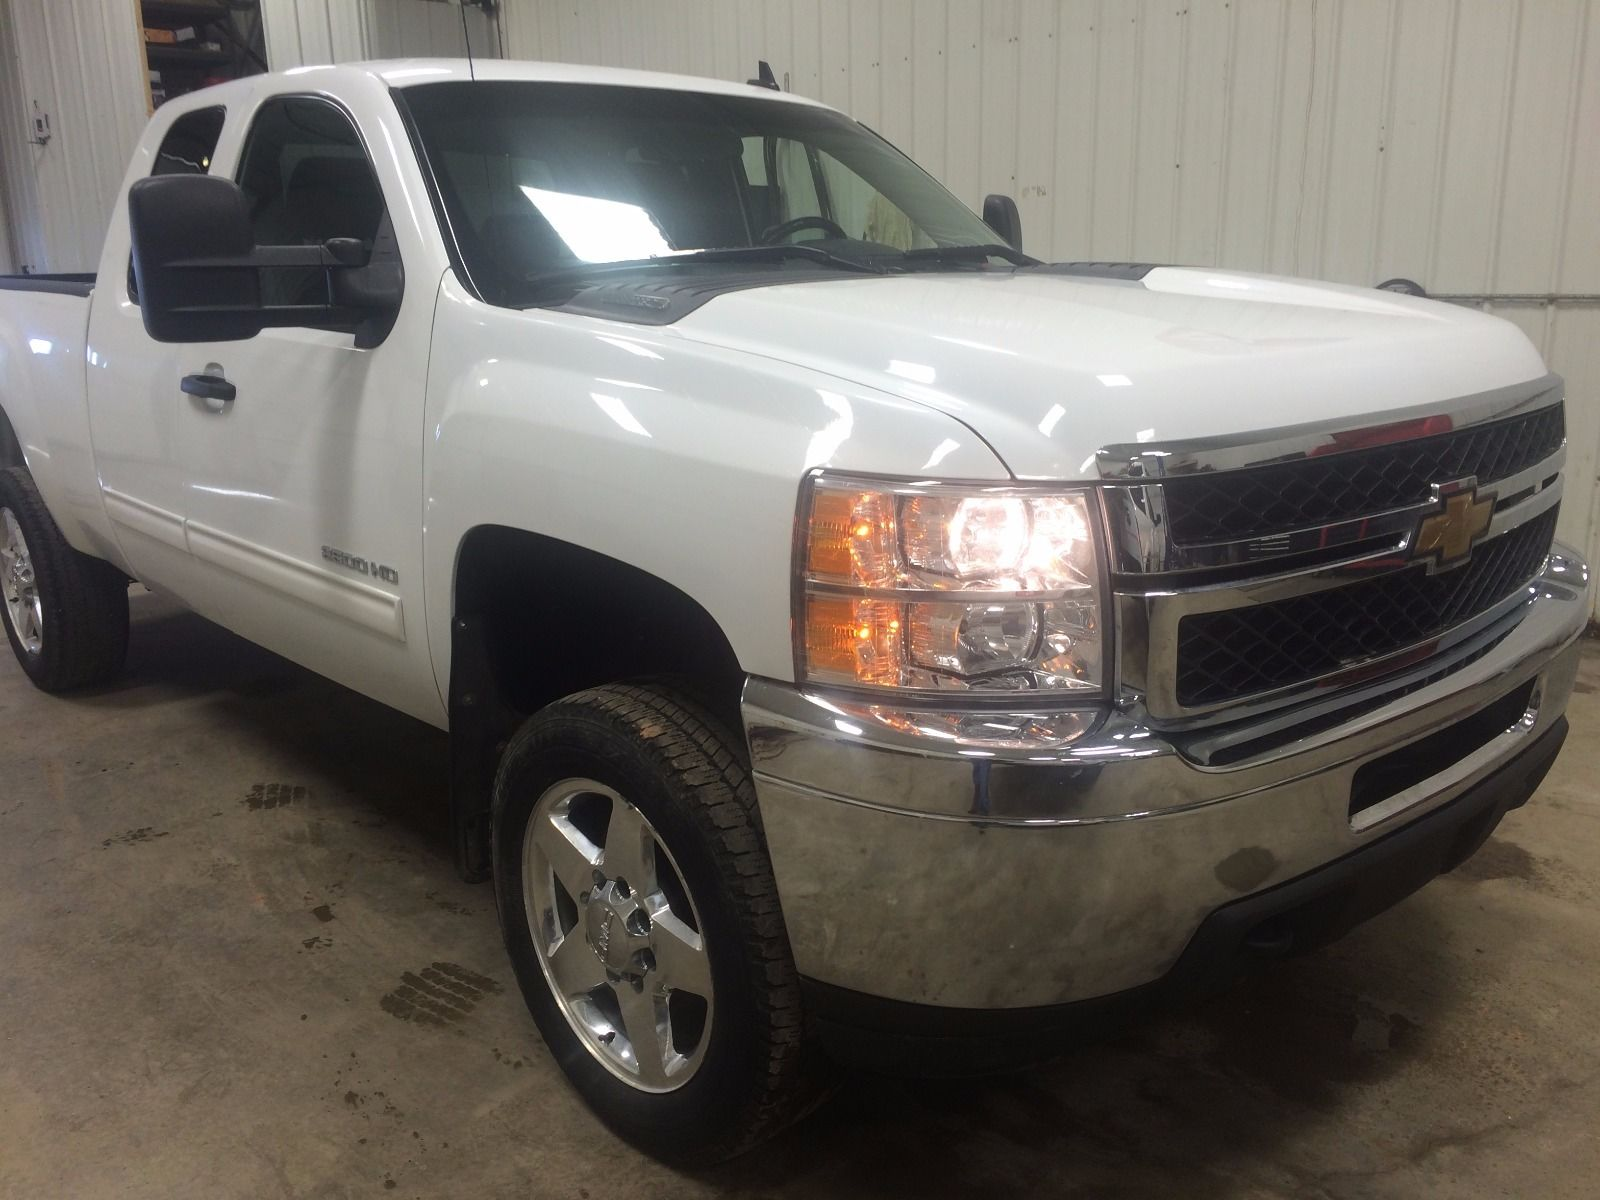 2011 Chevrolet Silverado Lt 2500hd Z71 Ext Cab Short Box